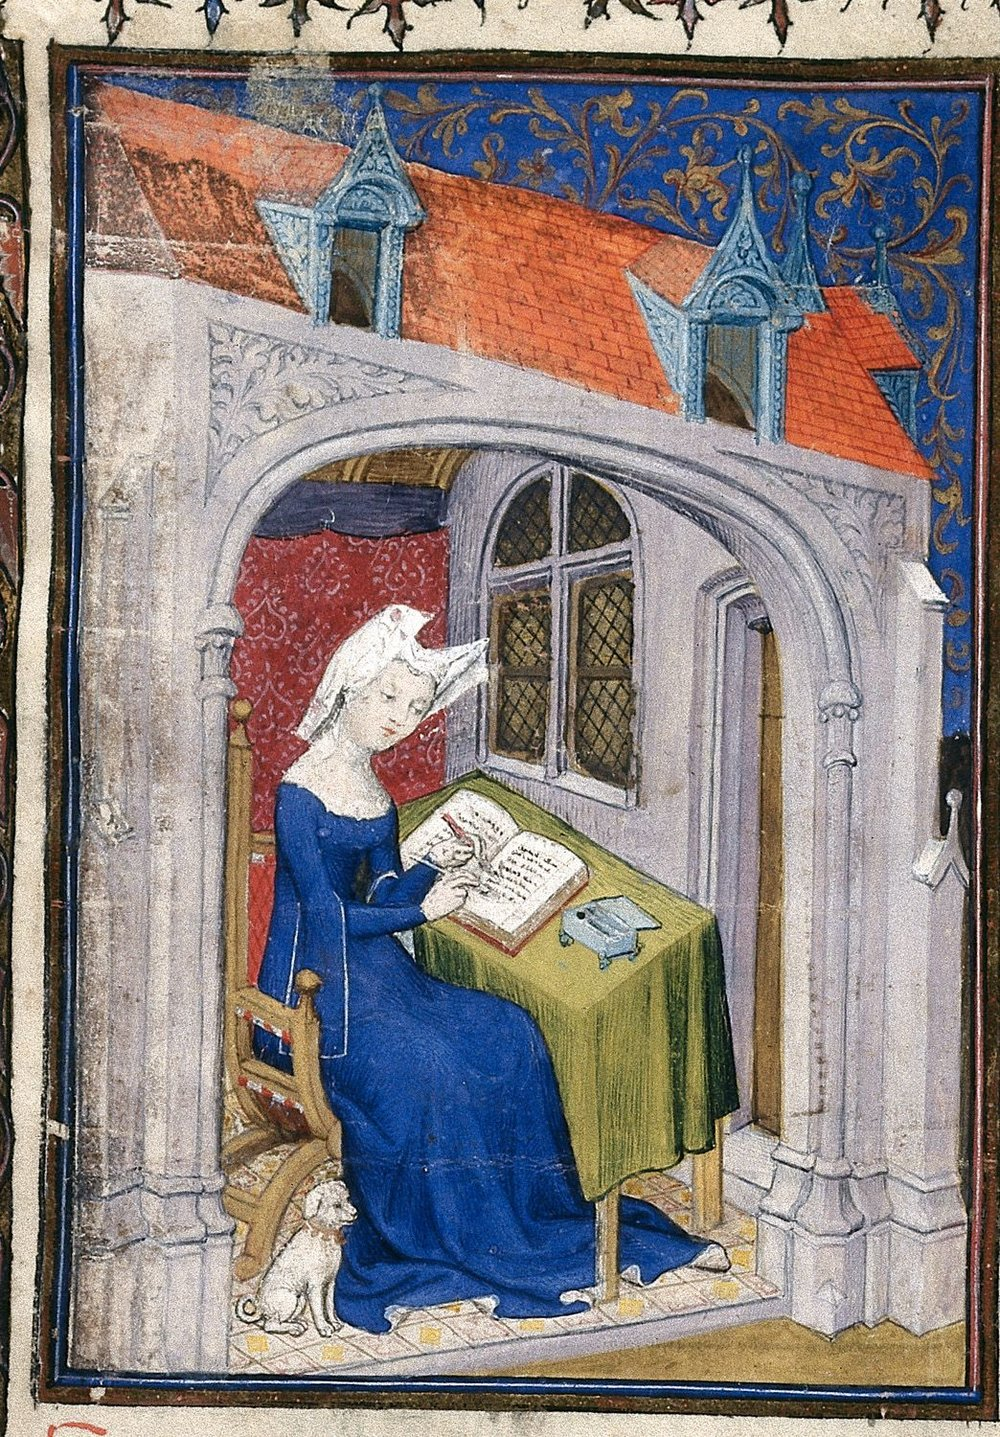 A Room of her own - Married at fifteen, mother of three, widowed at twenty-five – such a description could apply to thousands of medieval women, but Christine de Pizan was no ordinary medieval woman. She supported her family as a professional writer, produced many works of poetry, wrote a manual on war and chivalry, and advised kings and nobles on politics. In her most influential work, Christine publicly engaged in epistolary debate with the intellectuals of her day, defending the value of women. She expanded her defense of women in other works, notably The Book of the City of Ladies. In this concert, we explore the music of the courts in which Christine grew up and worked, set side by side with readings taken from this latter book, painting an aural picture of women and their status in early fifteenth-century France.